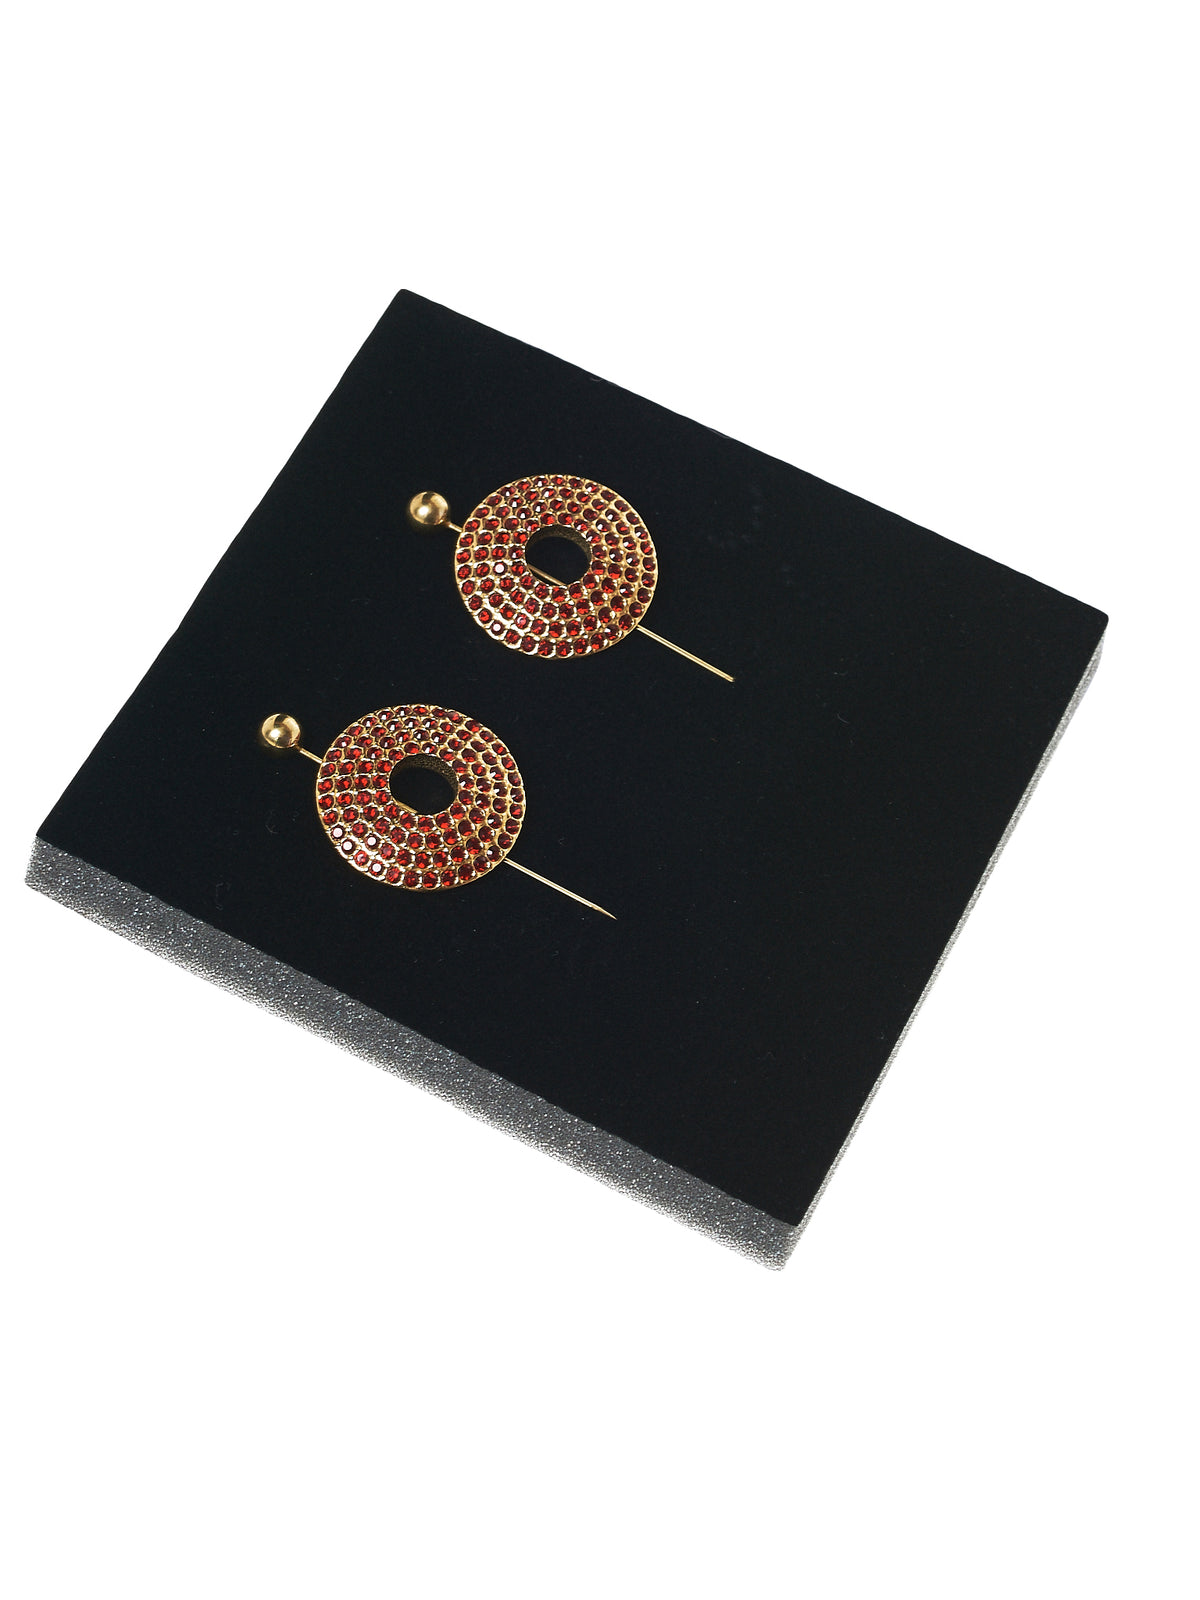 Gem Encrusted Lapel Pin (NPIERC-S14-FBG-GOLD-RUBY)